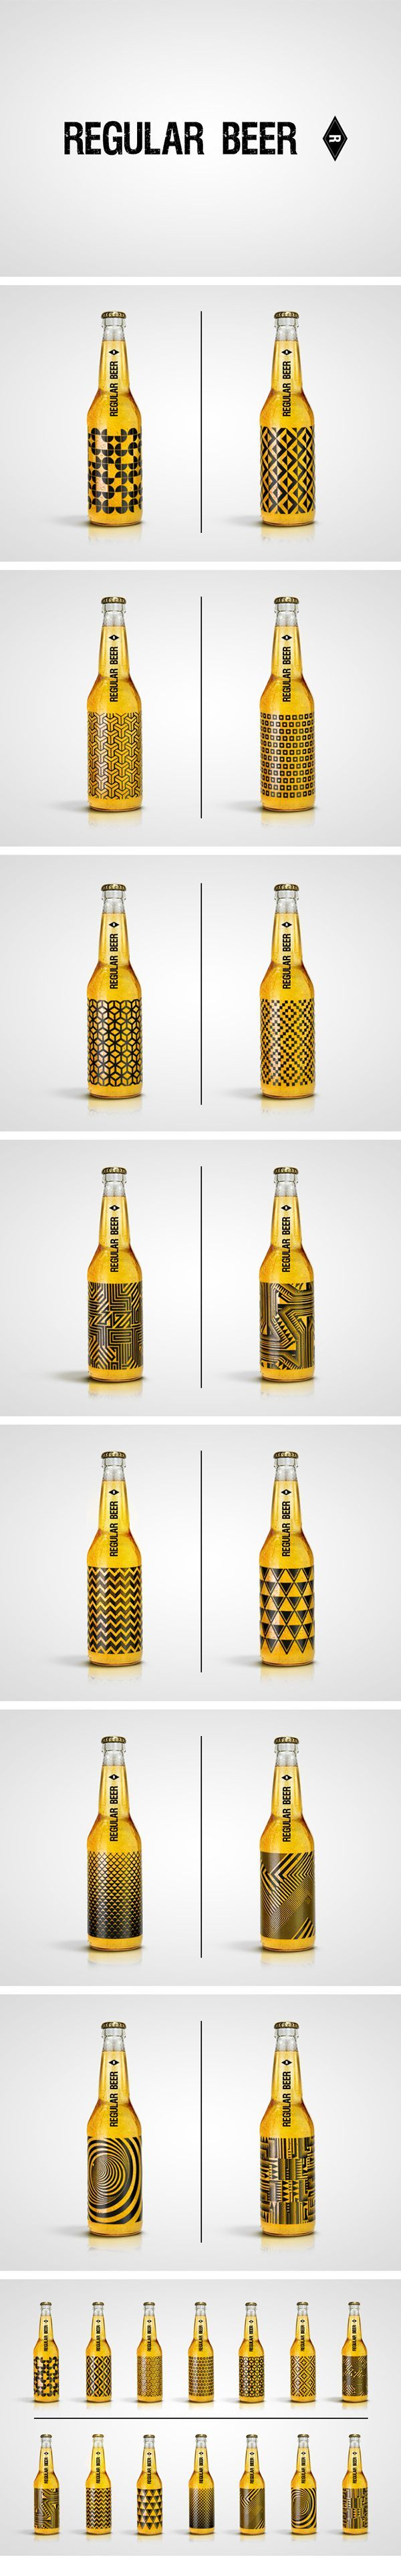 Regular Beer by Kamil PiÄ…tkowski